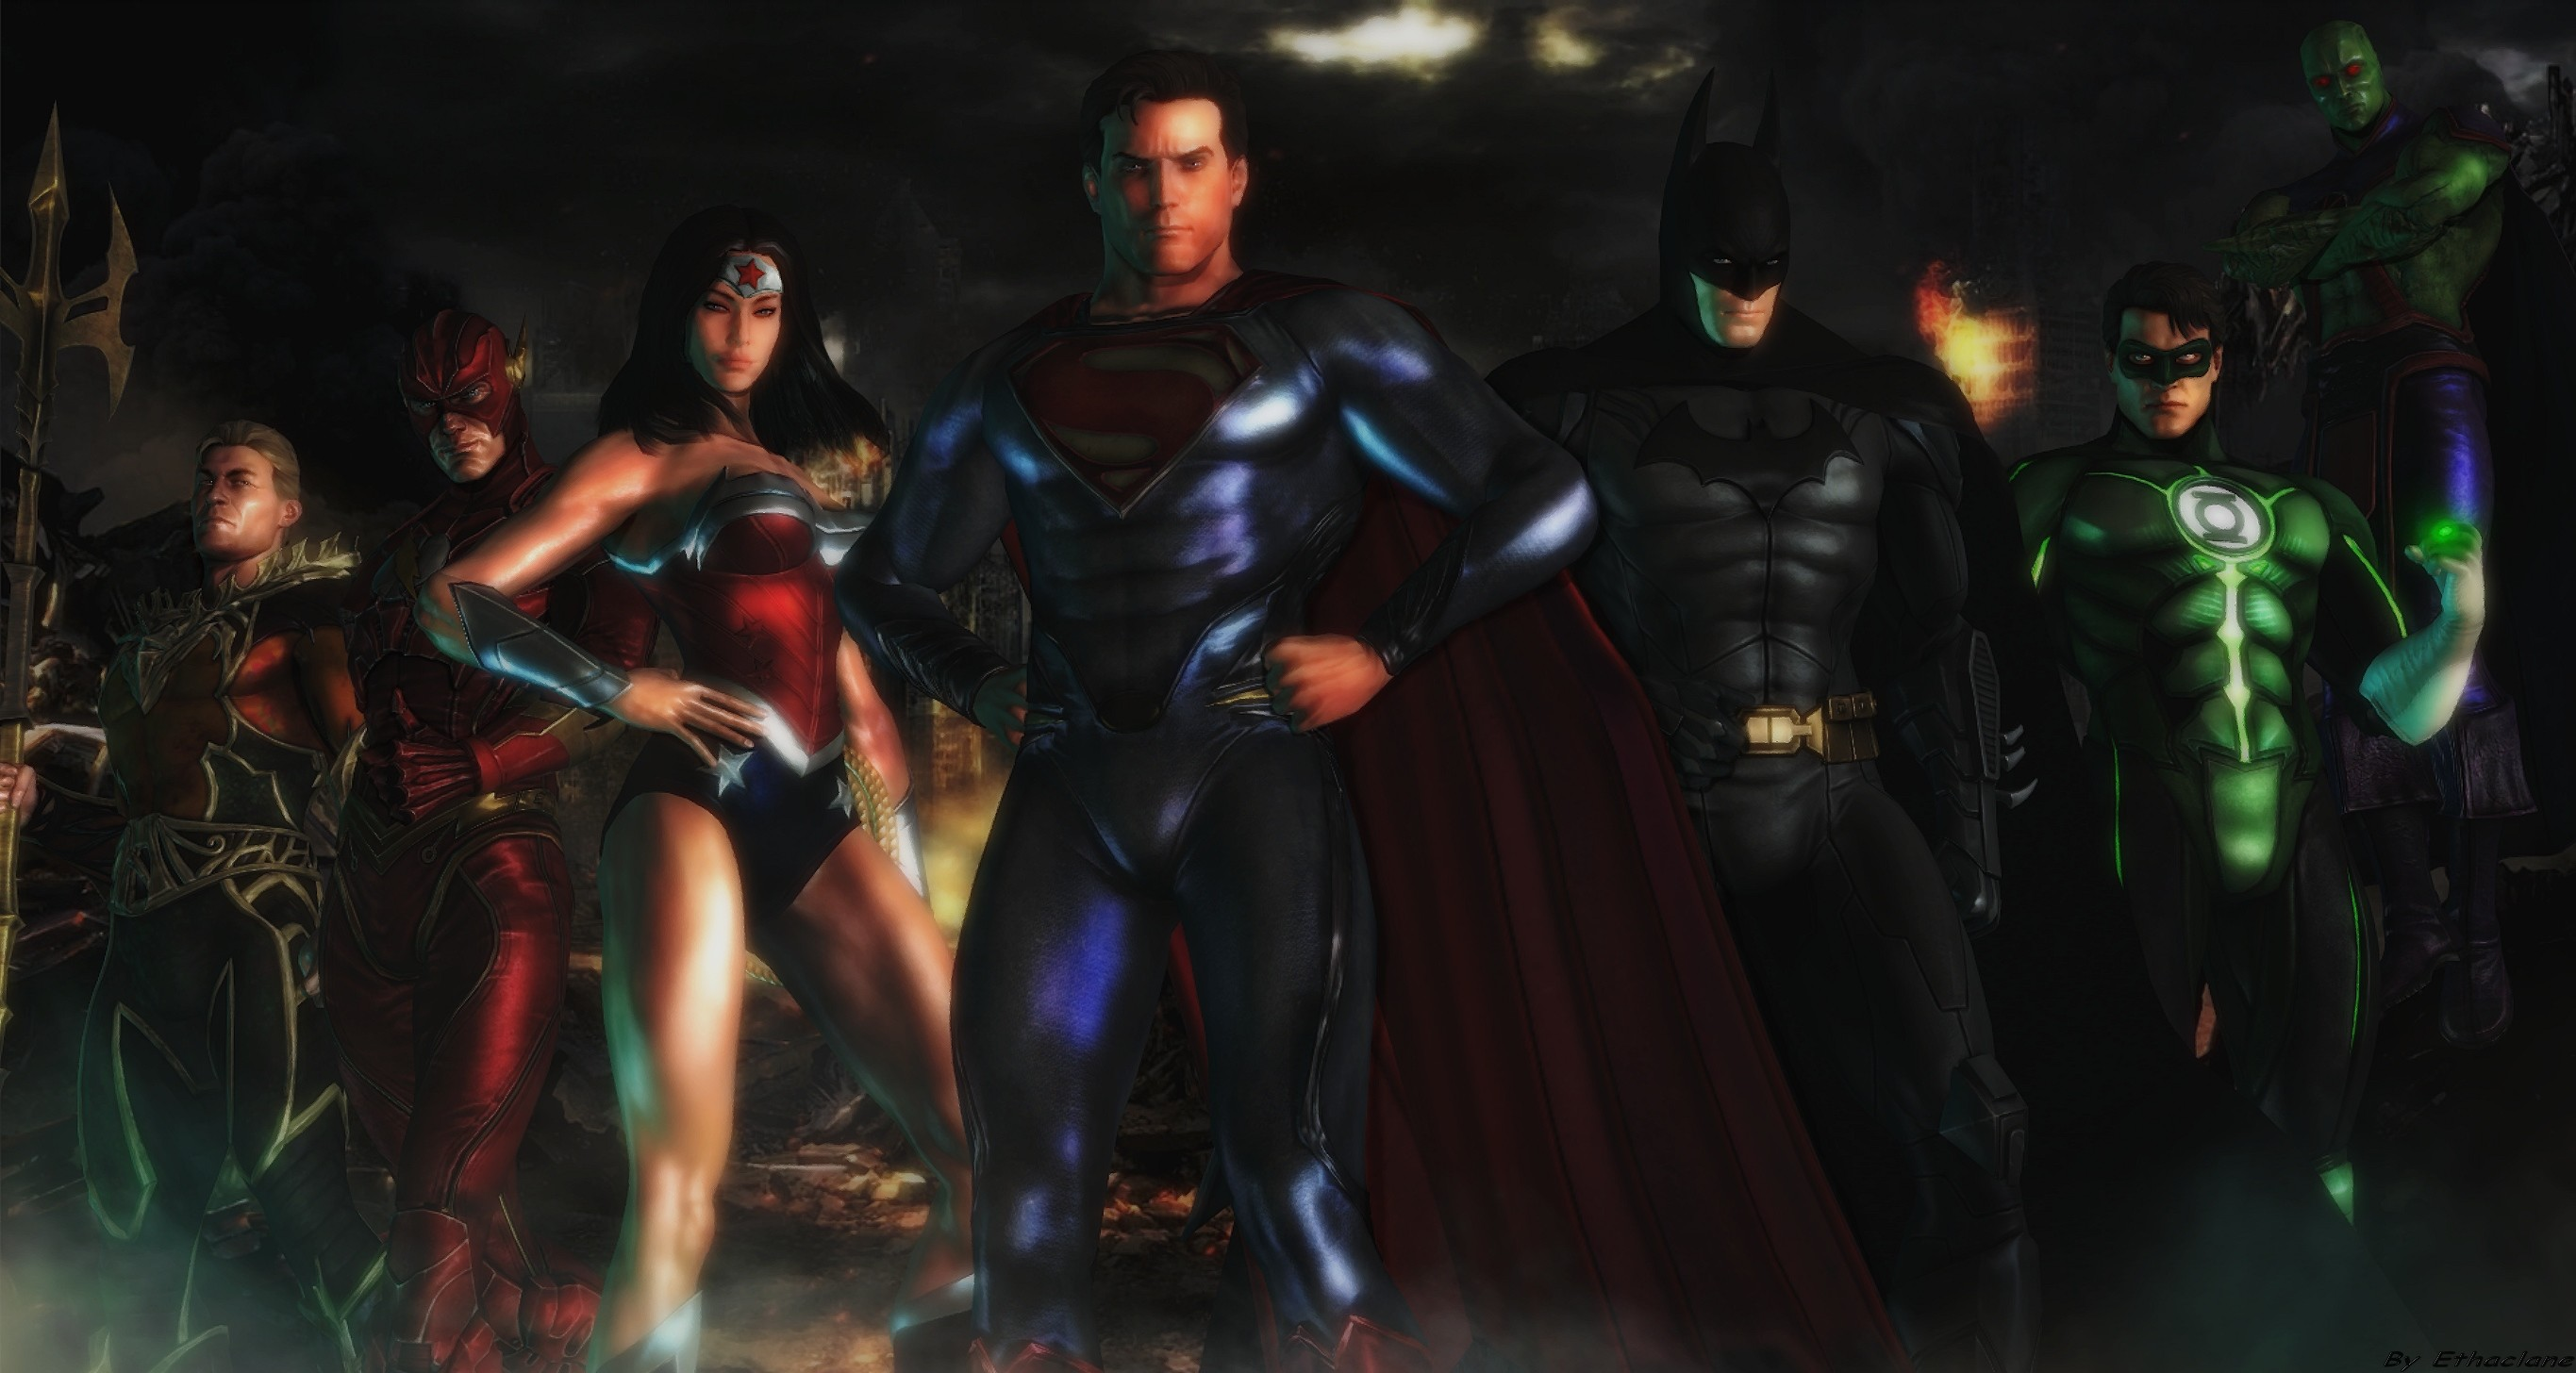 2731x1456 Justice league wallpaper by ethaclane Justice league wallpaper by ethaclane